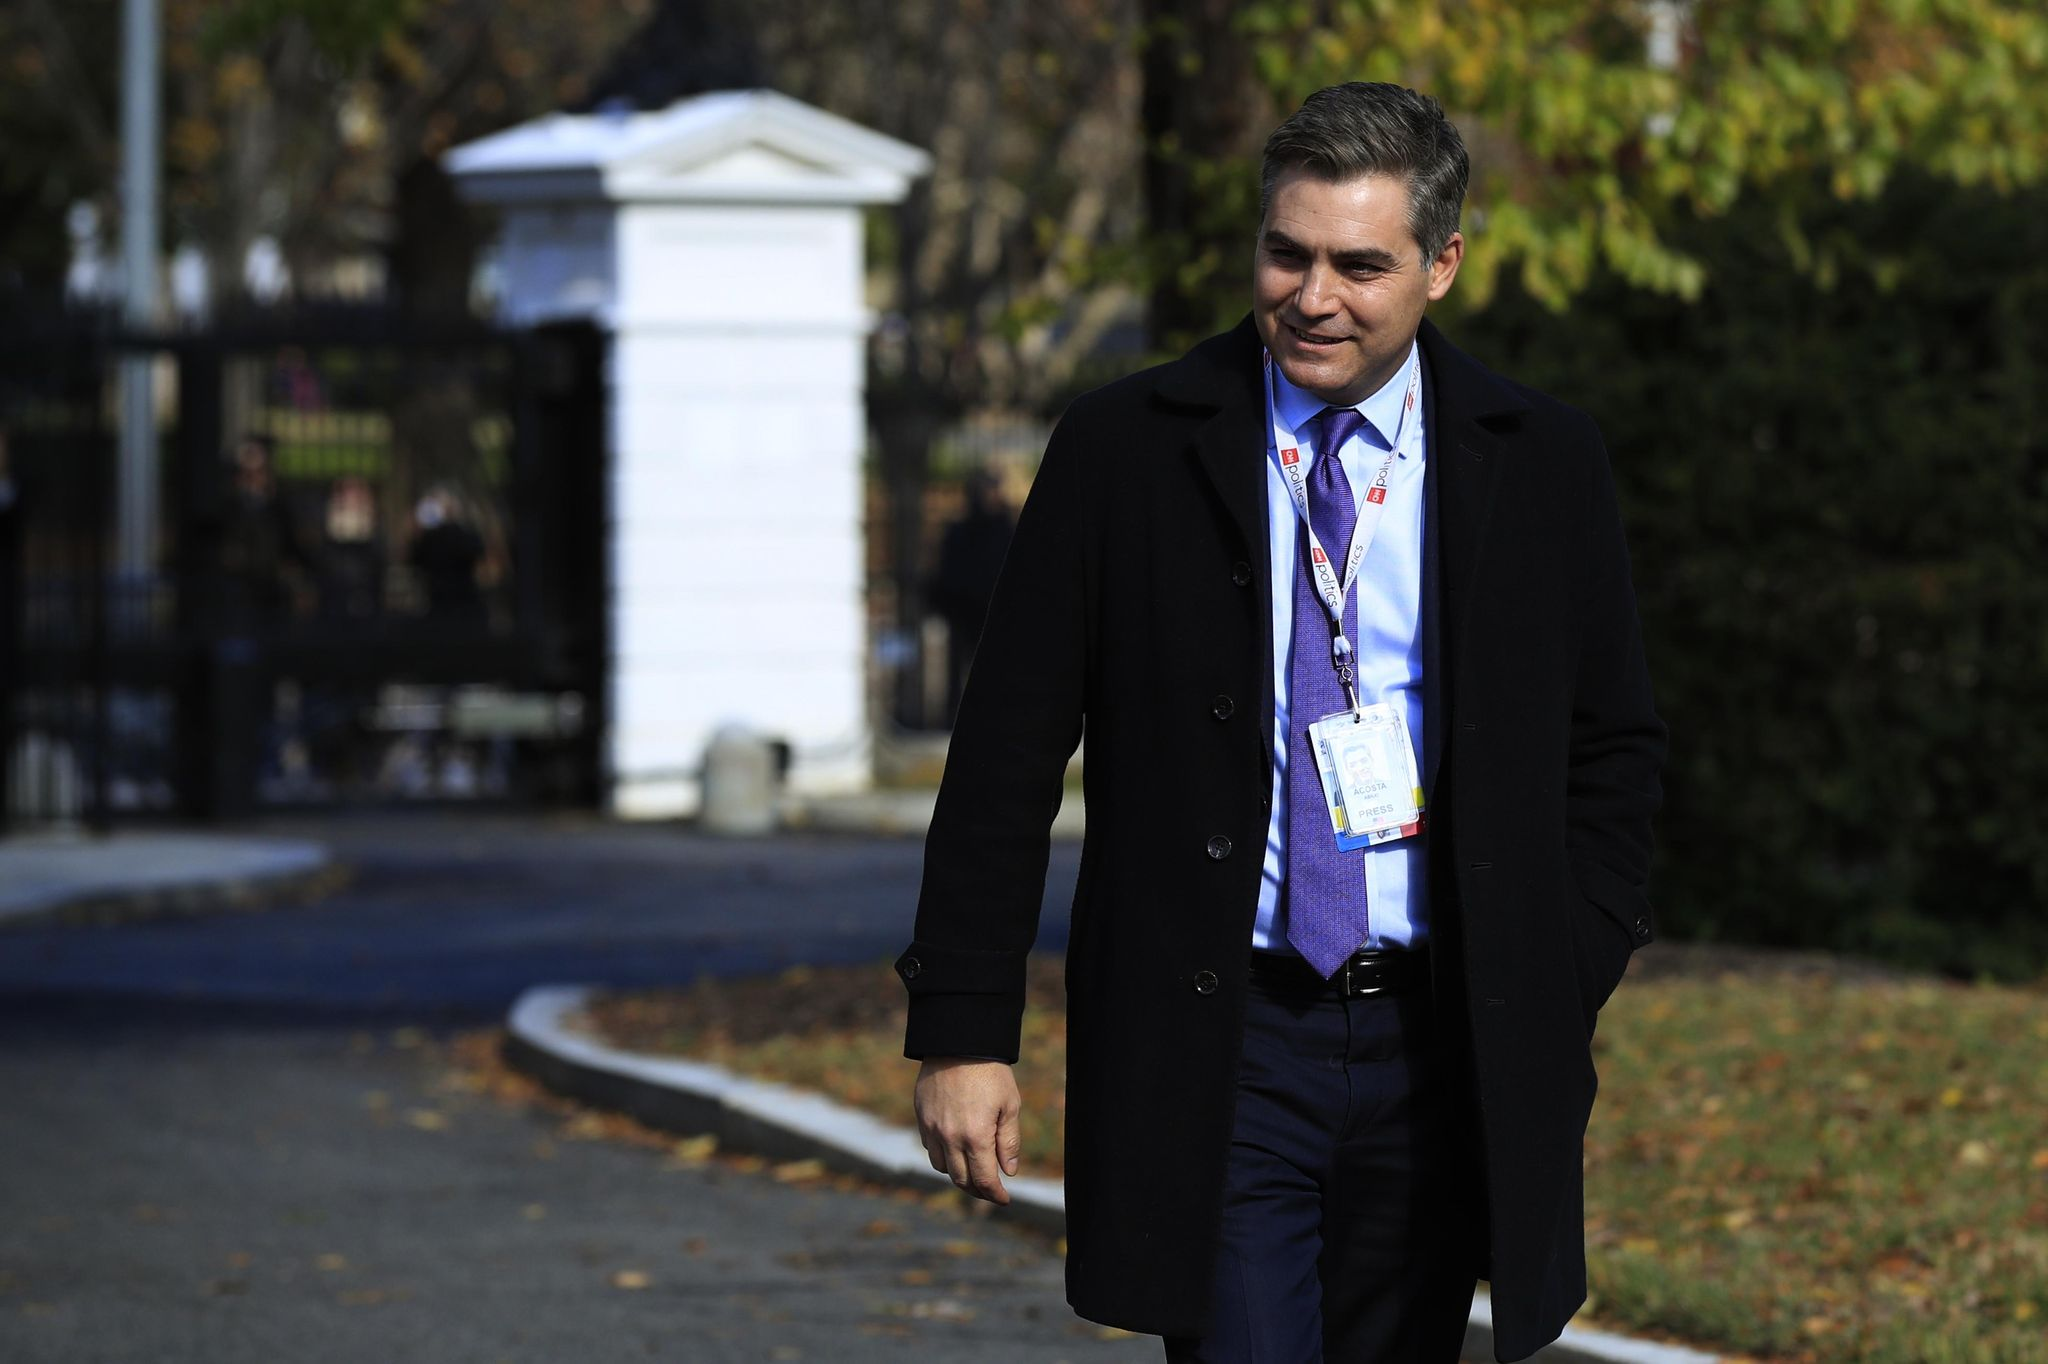 Jim Acosta's smug, and no court ruling changes that